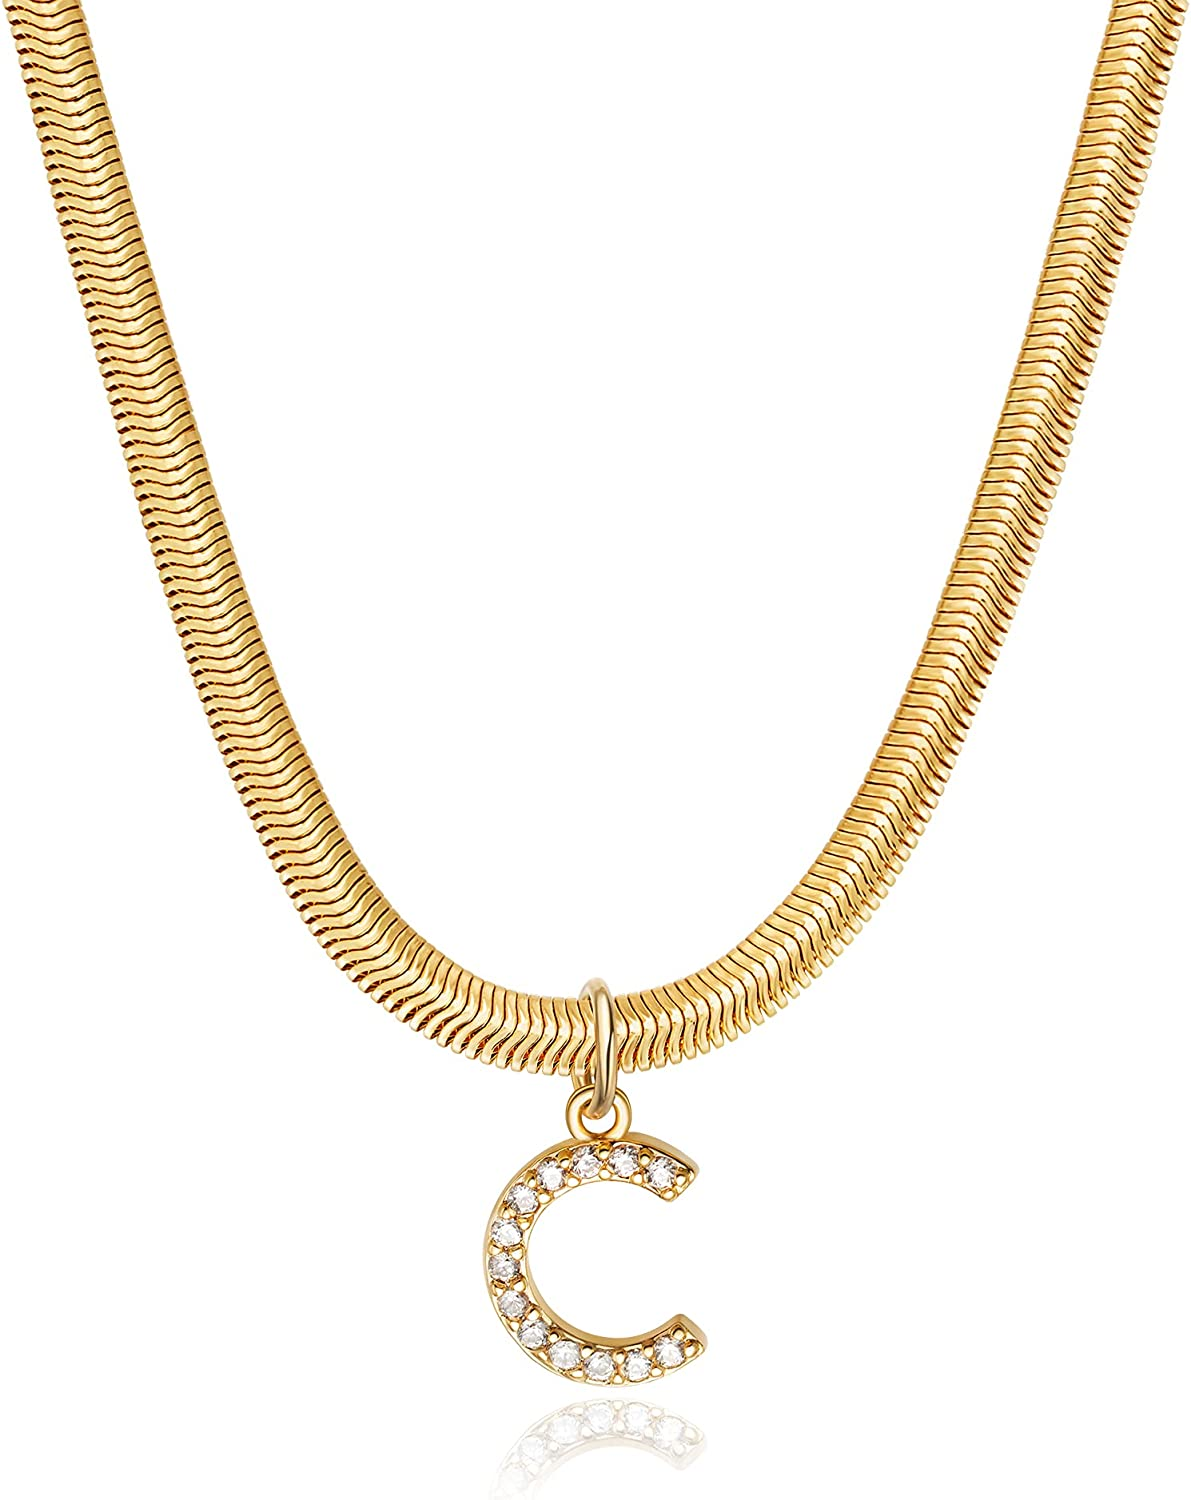 NECOCY Gold Initial Herringbone Necklace 18k Gold Plated 3mm Oval Snake Chain Necklace Dainty Flexible Chain Necklace with Cubic Zirconia Personalized Alphabet Letter Name Pendant Necklace for Women